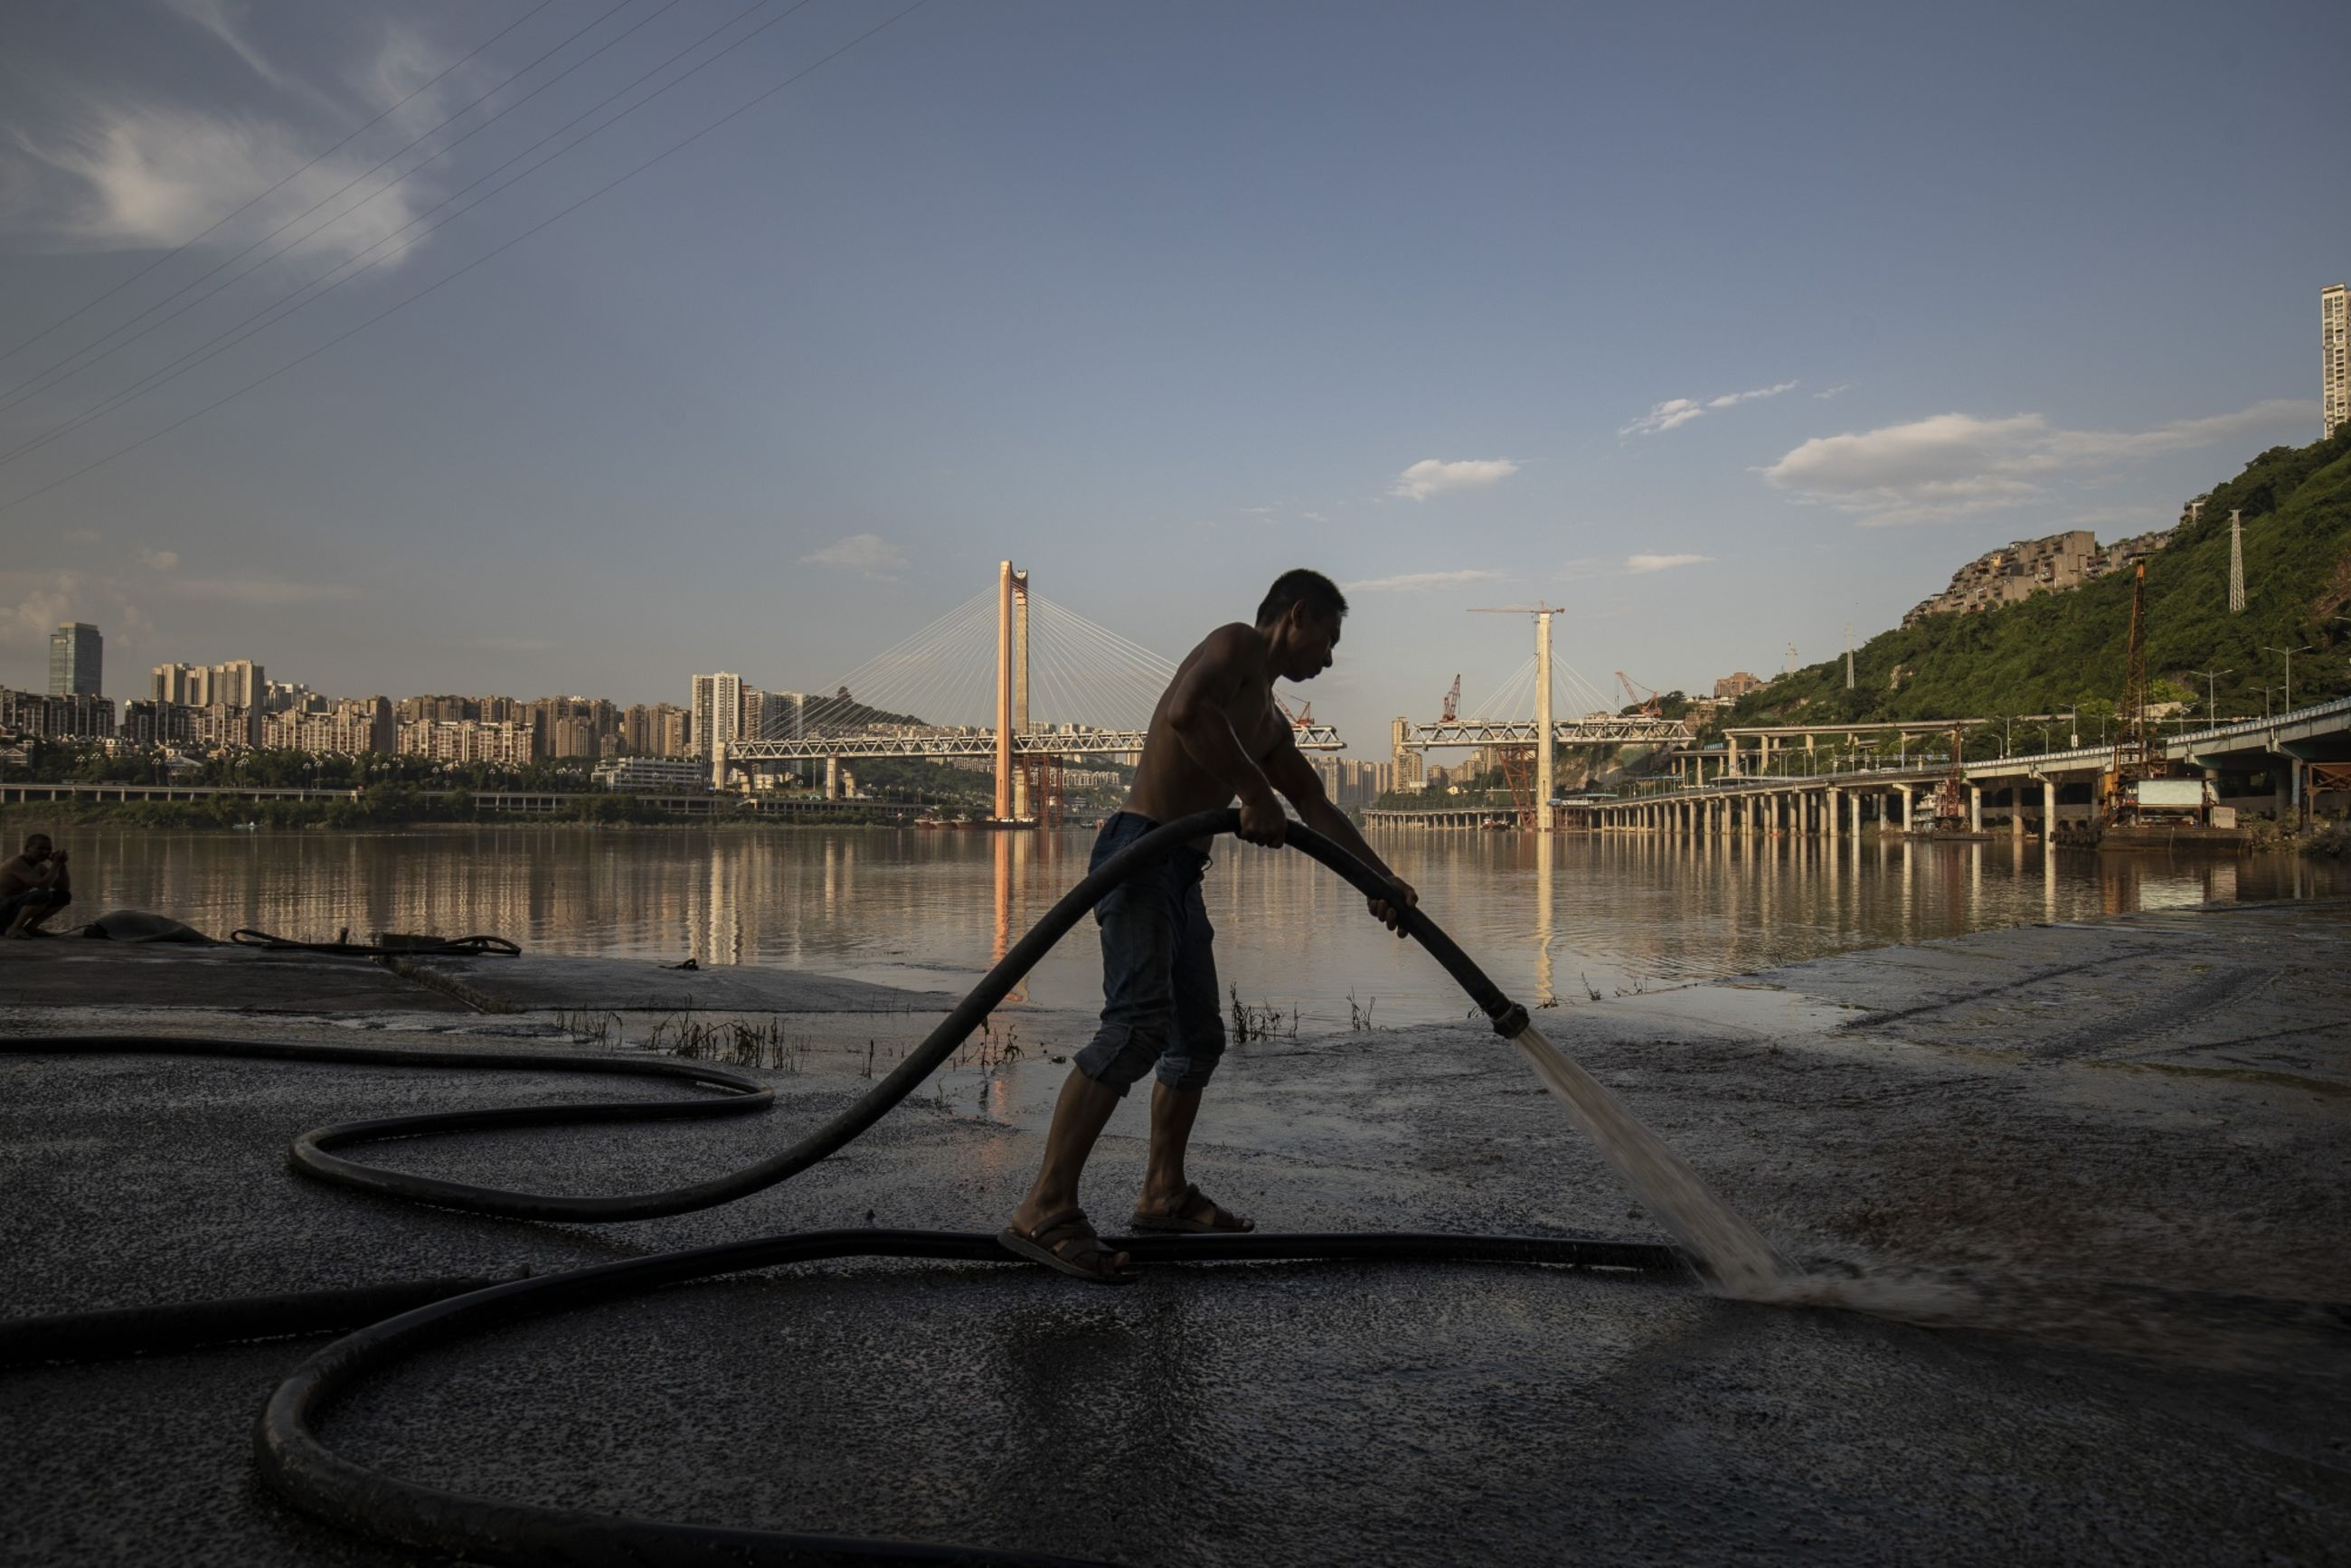 relates to After 500 Years Trying to Tame Fatal Floods, China Tries a New Way